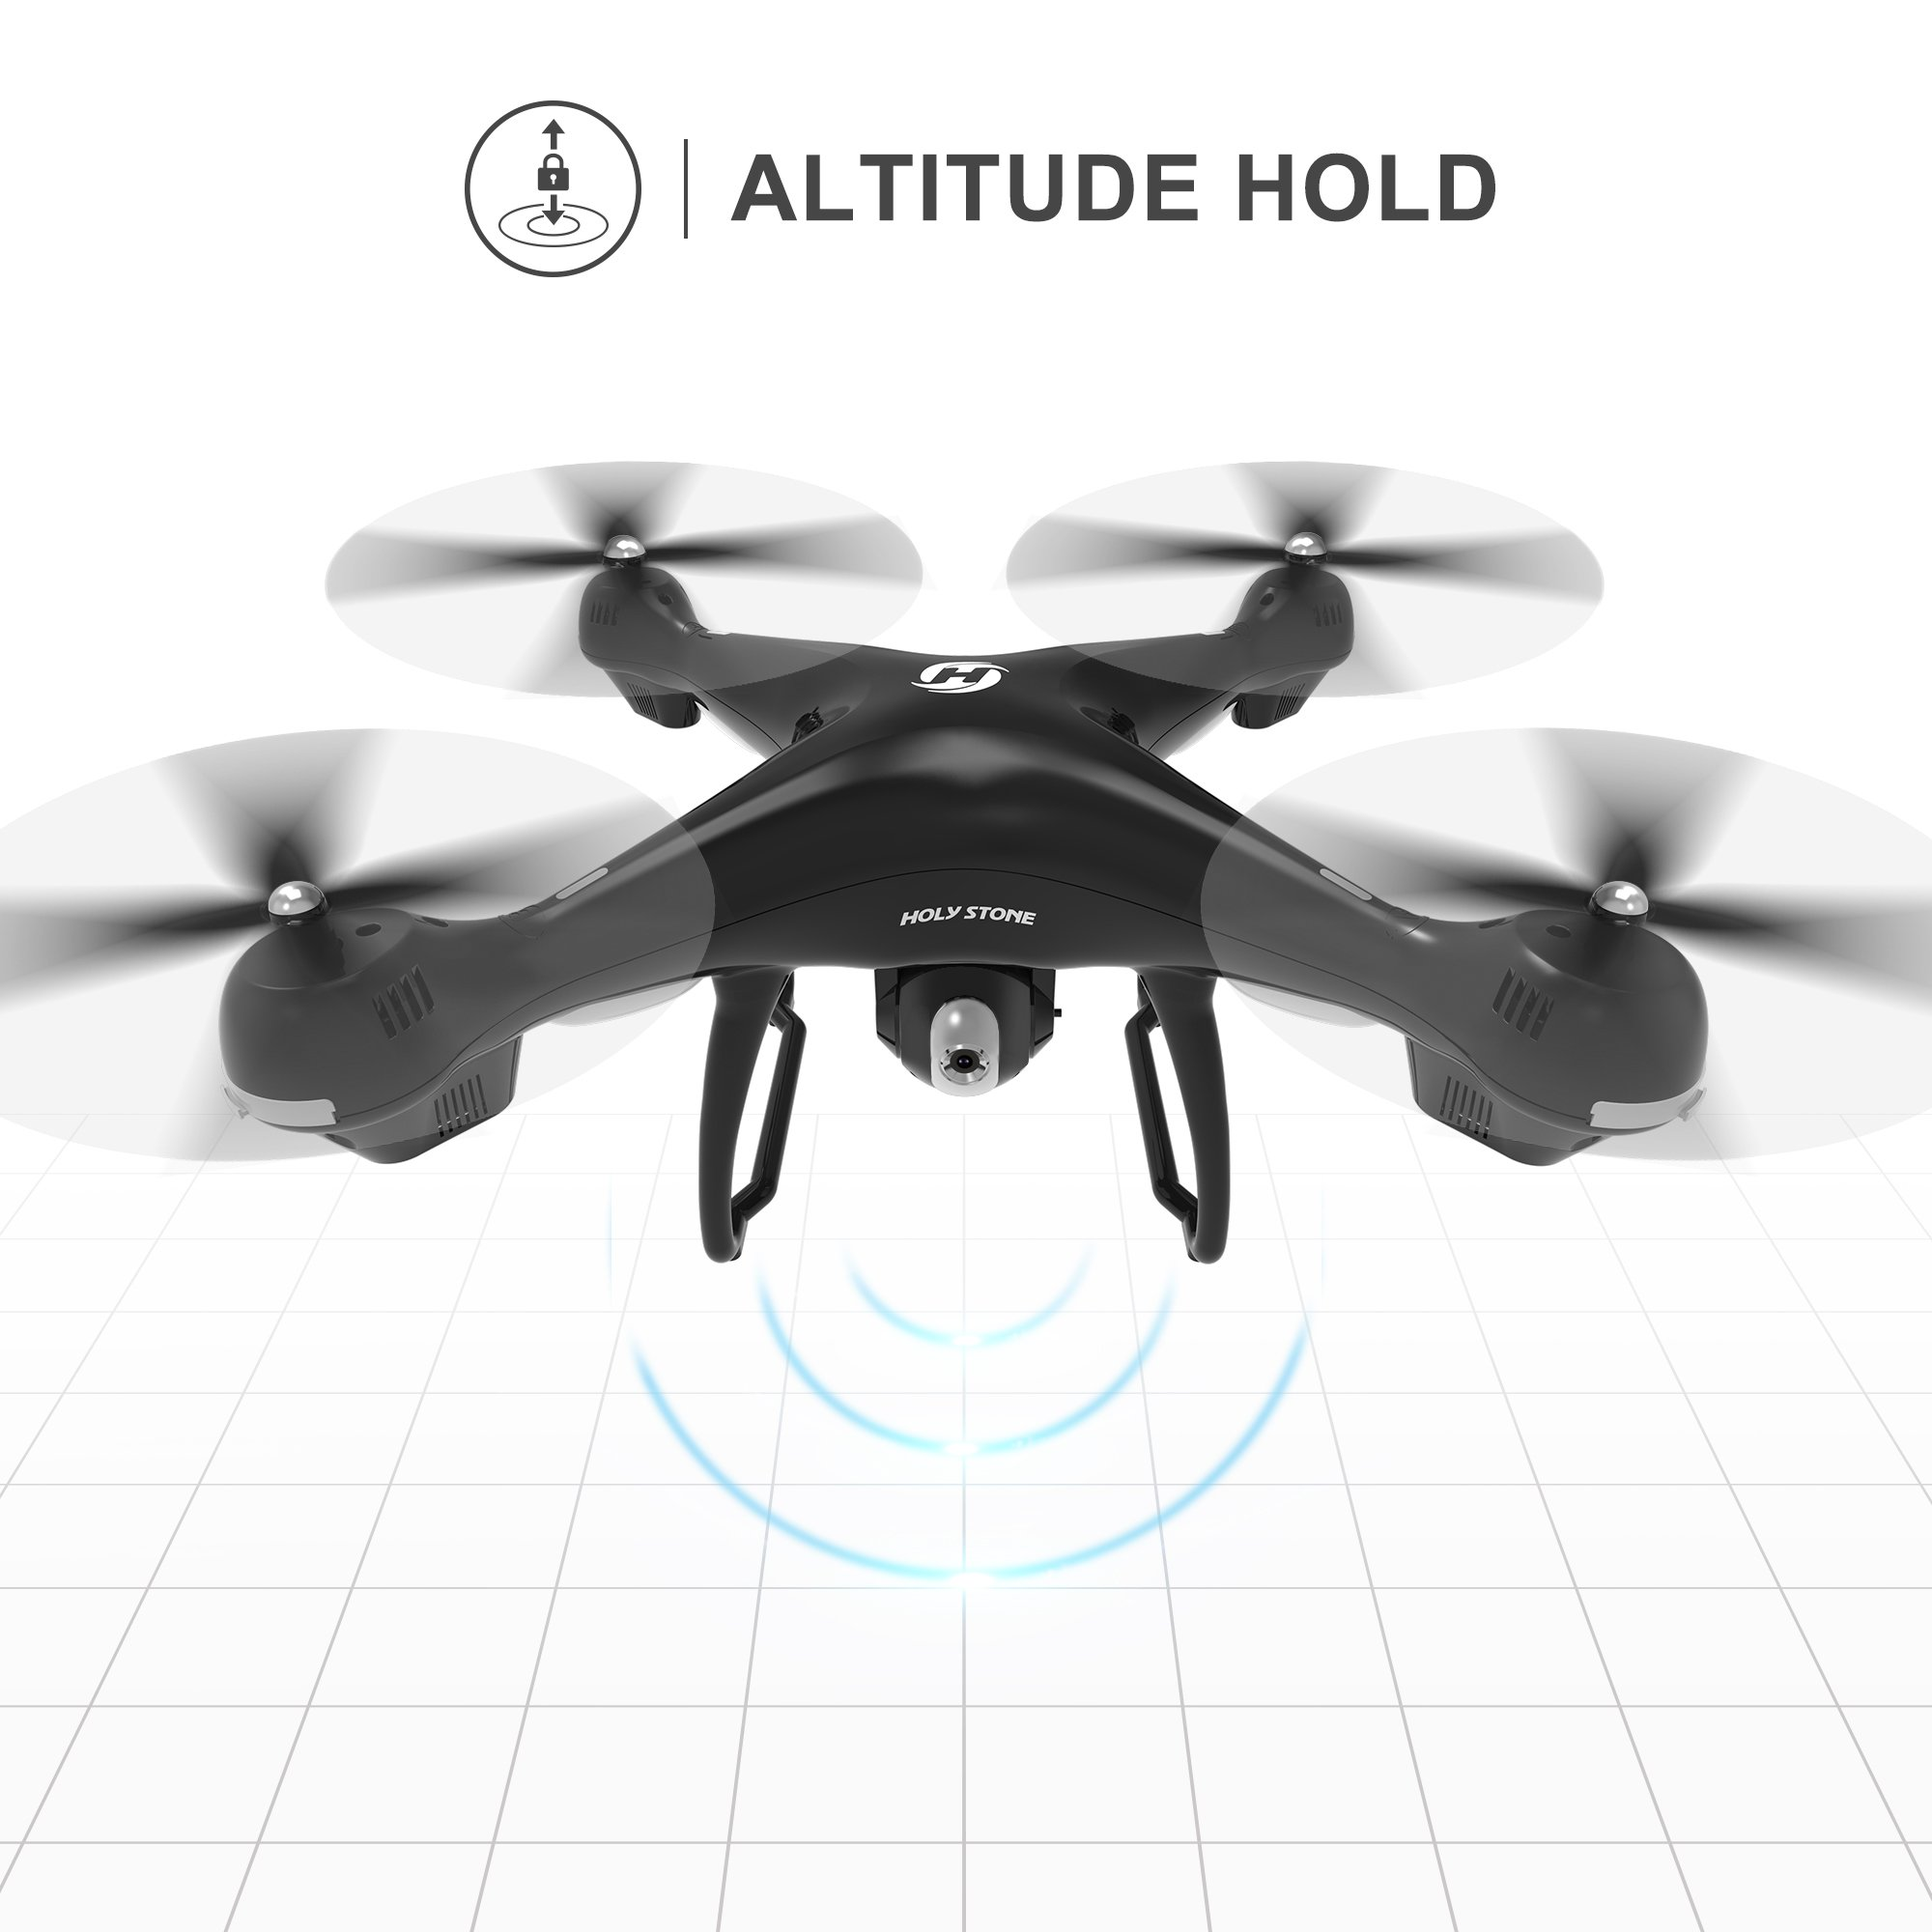 Holy Stone HS100 FPV RC Drone with Camera Live Video and GPS Return Home Quadcopter with Adjustable Wide-Angle 720P HD WIFI Camera- Follow Me, Altitude Hold, Intelligent Battery, Long Control Distance by Holy Stone (Image #8)